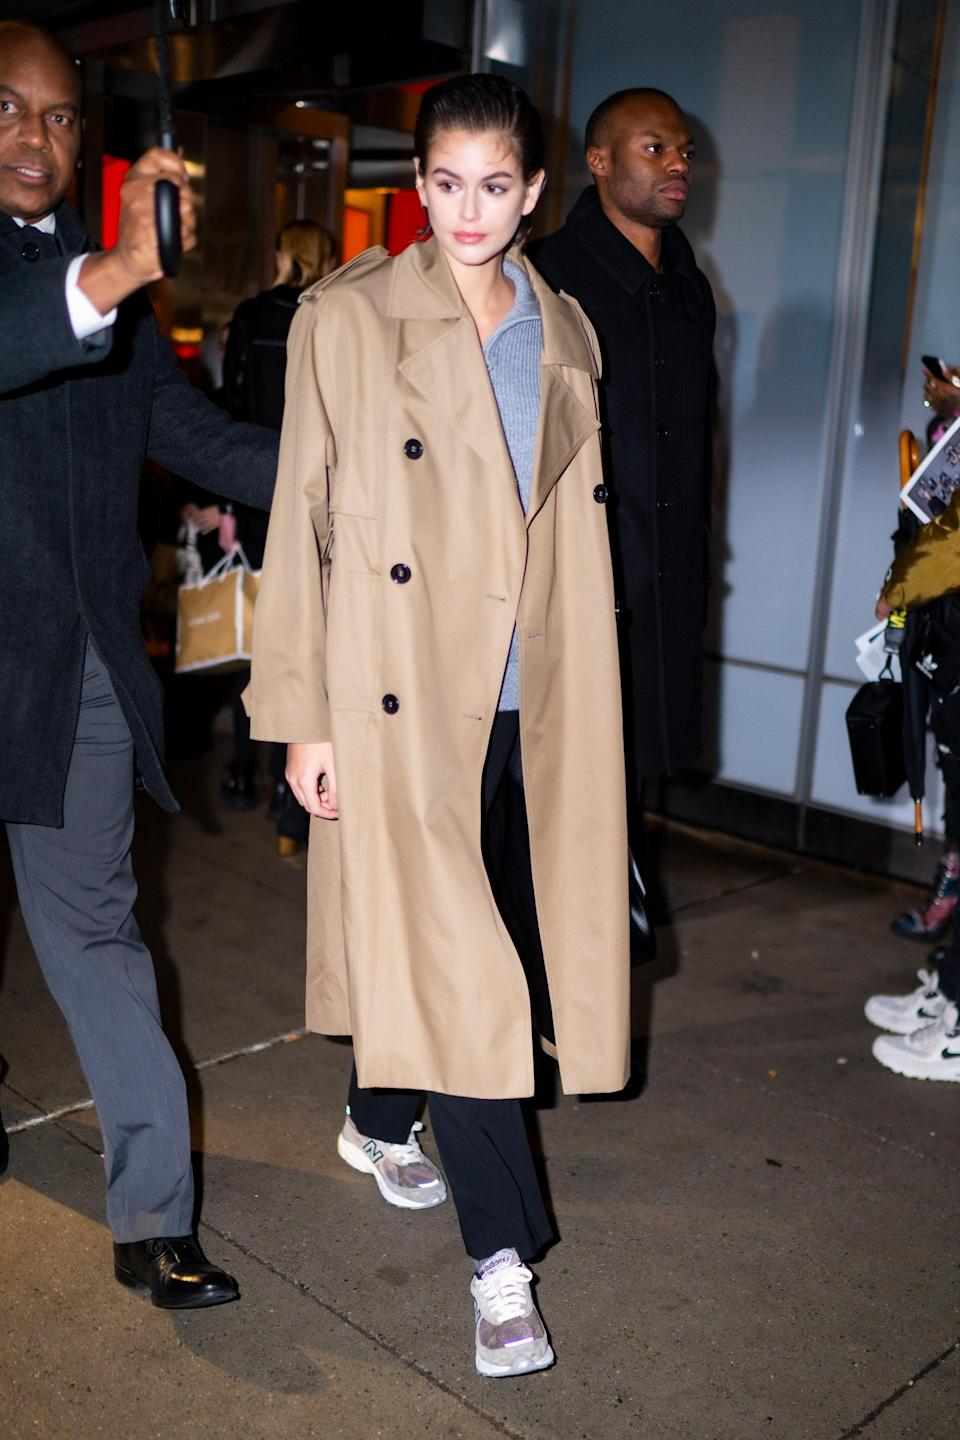 Trench coats work with sneakers just as well as boots.